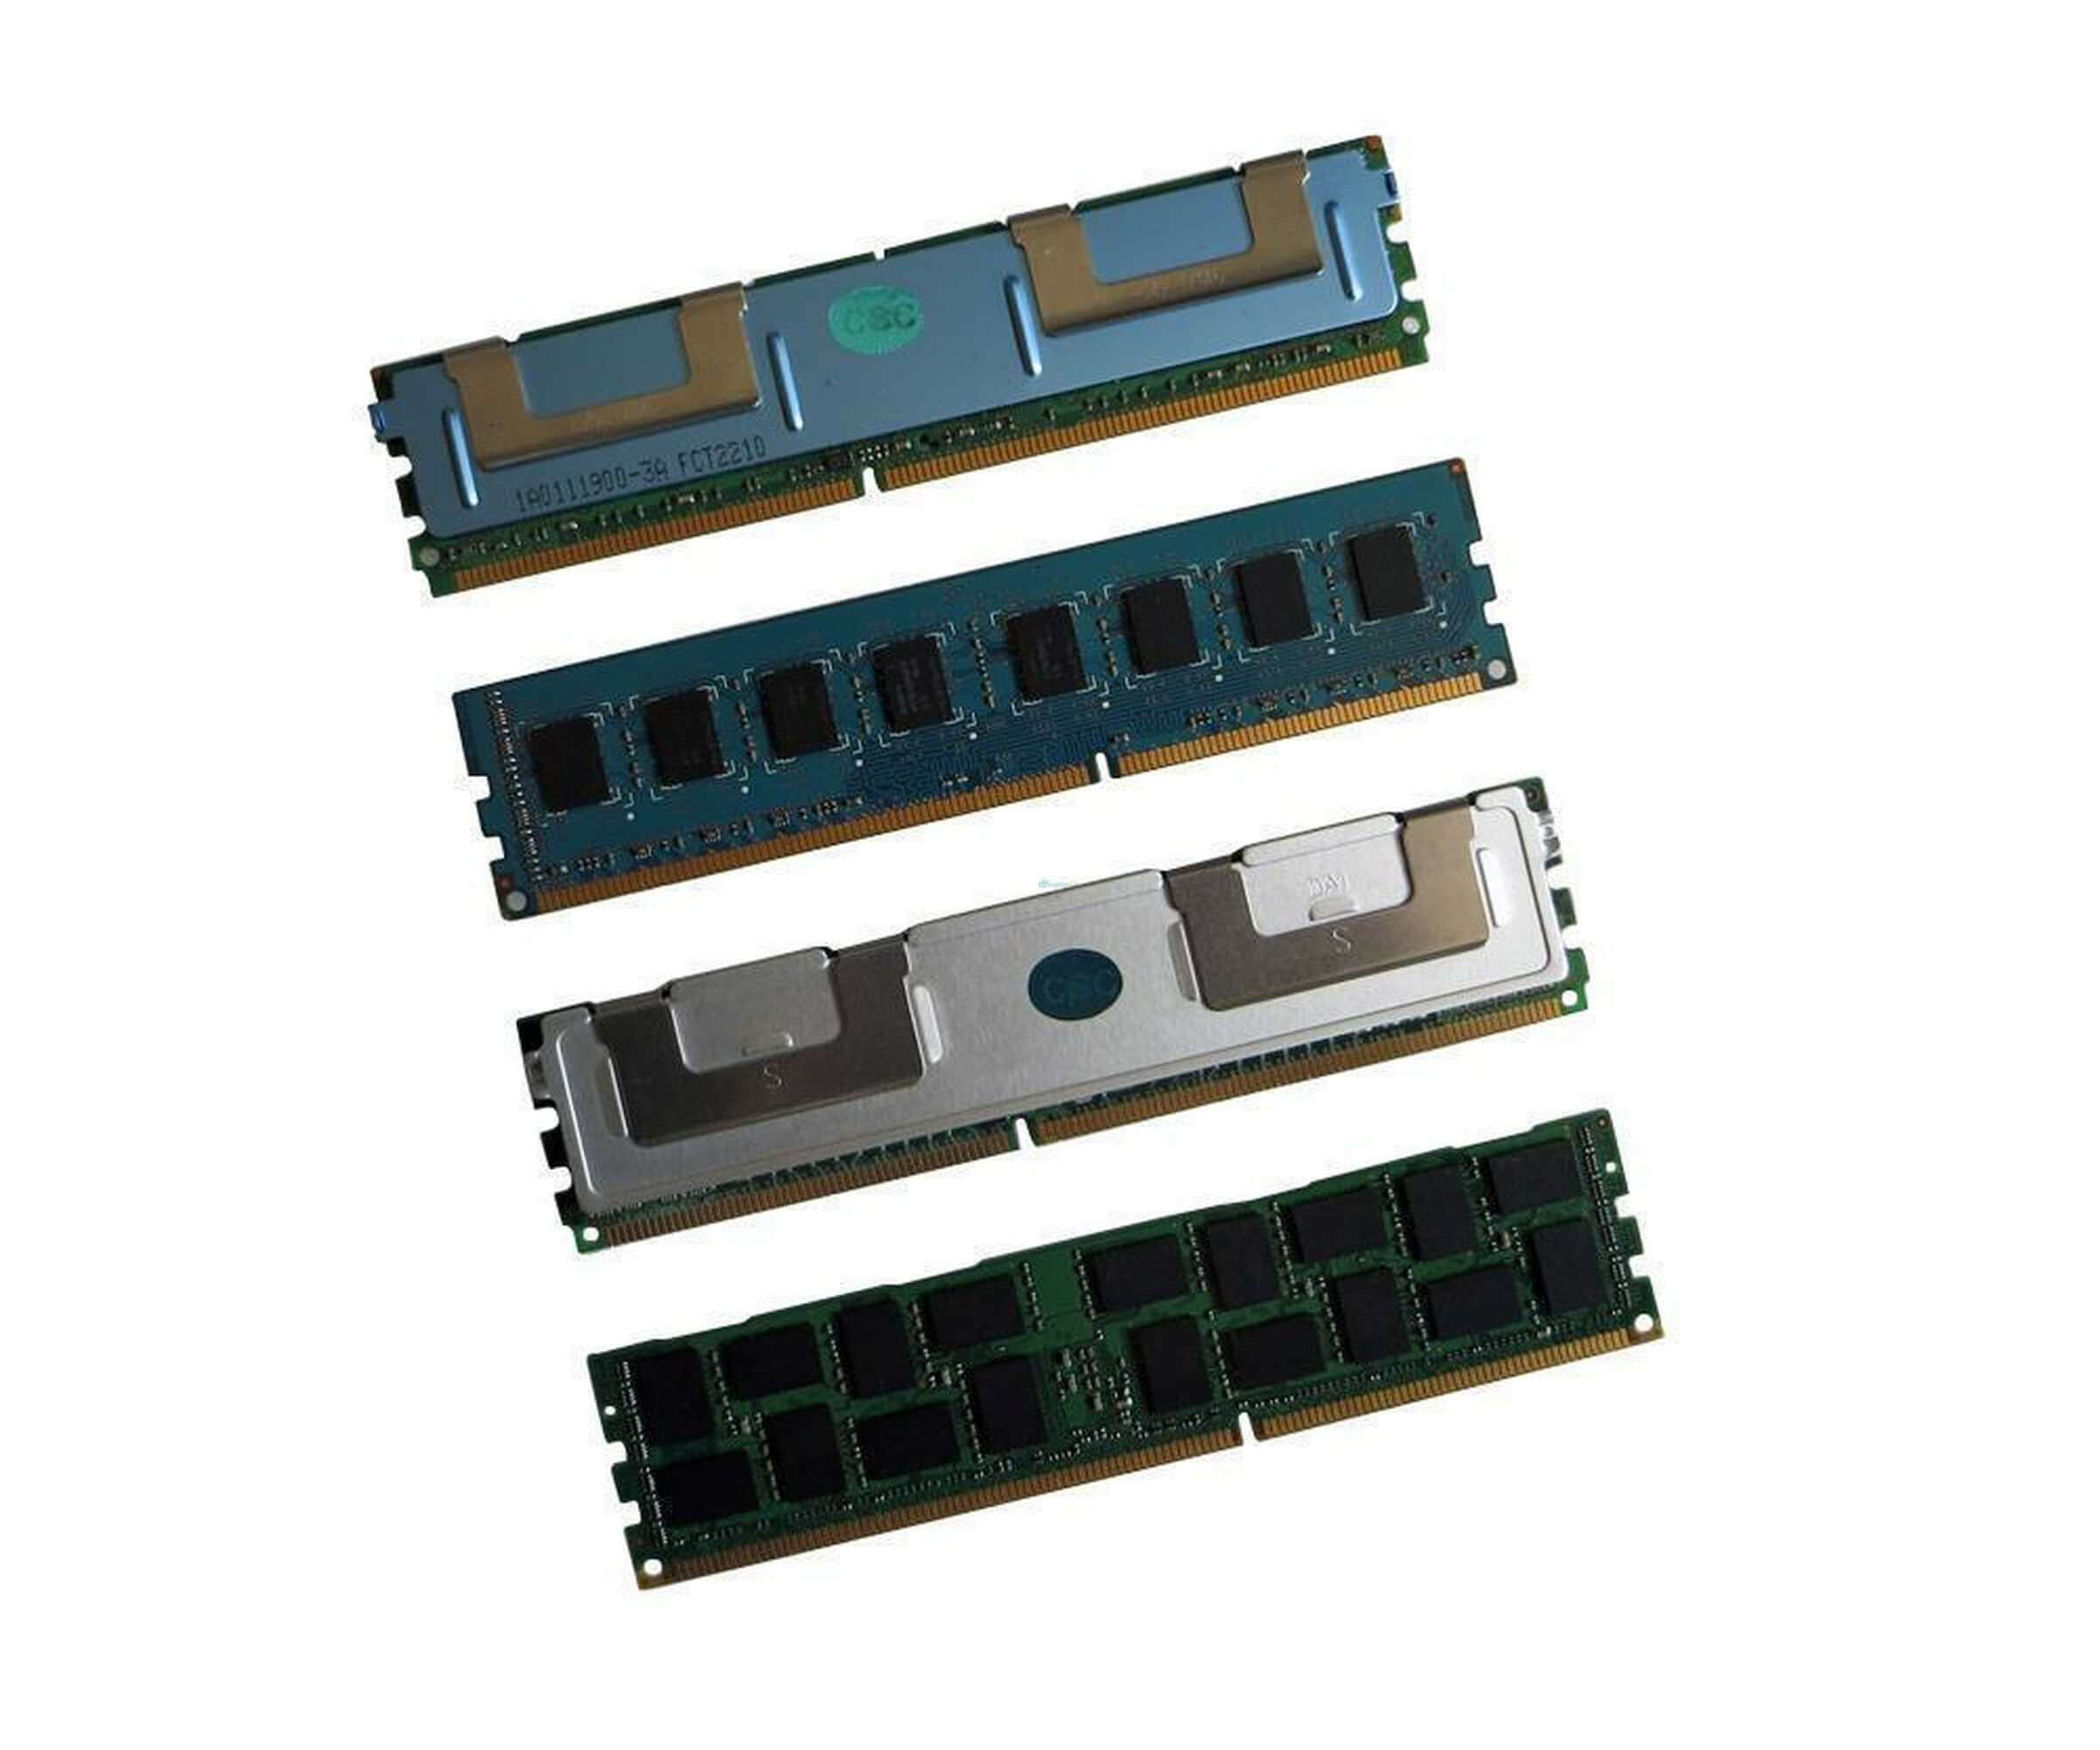 Infineon Qimonda - HYS72T128000HR-5-B Memory - 1 GB - 240-PIN - PC-3200 - DDR2 SDRAM